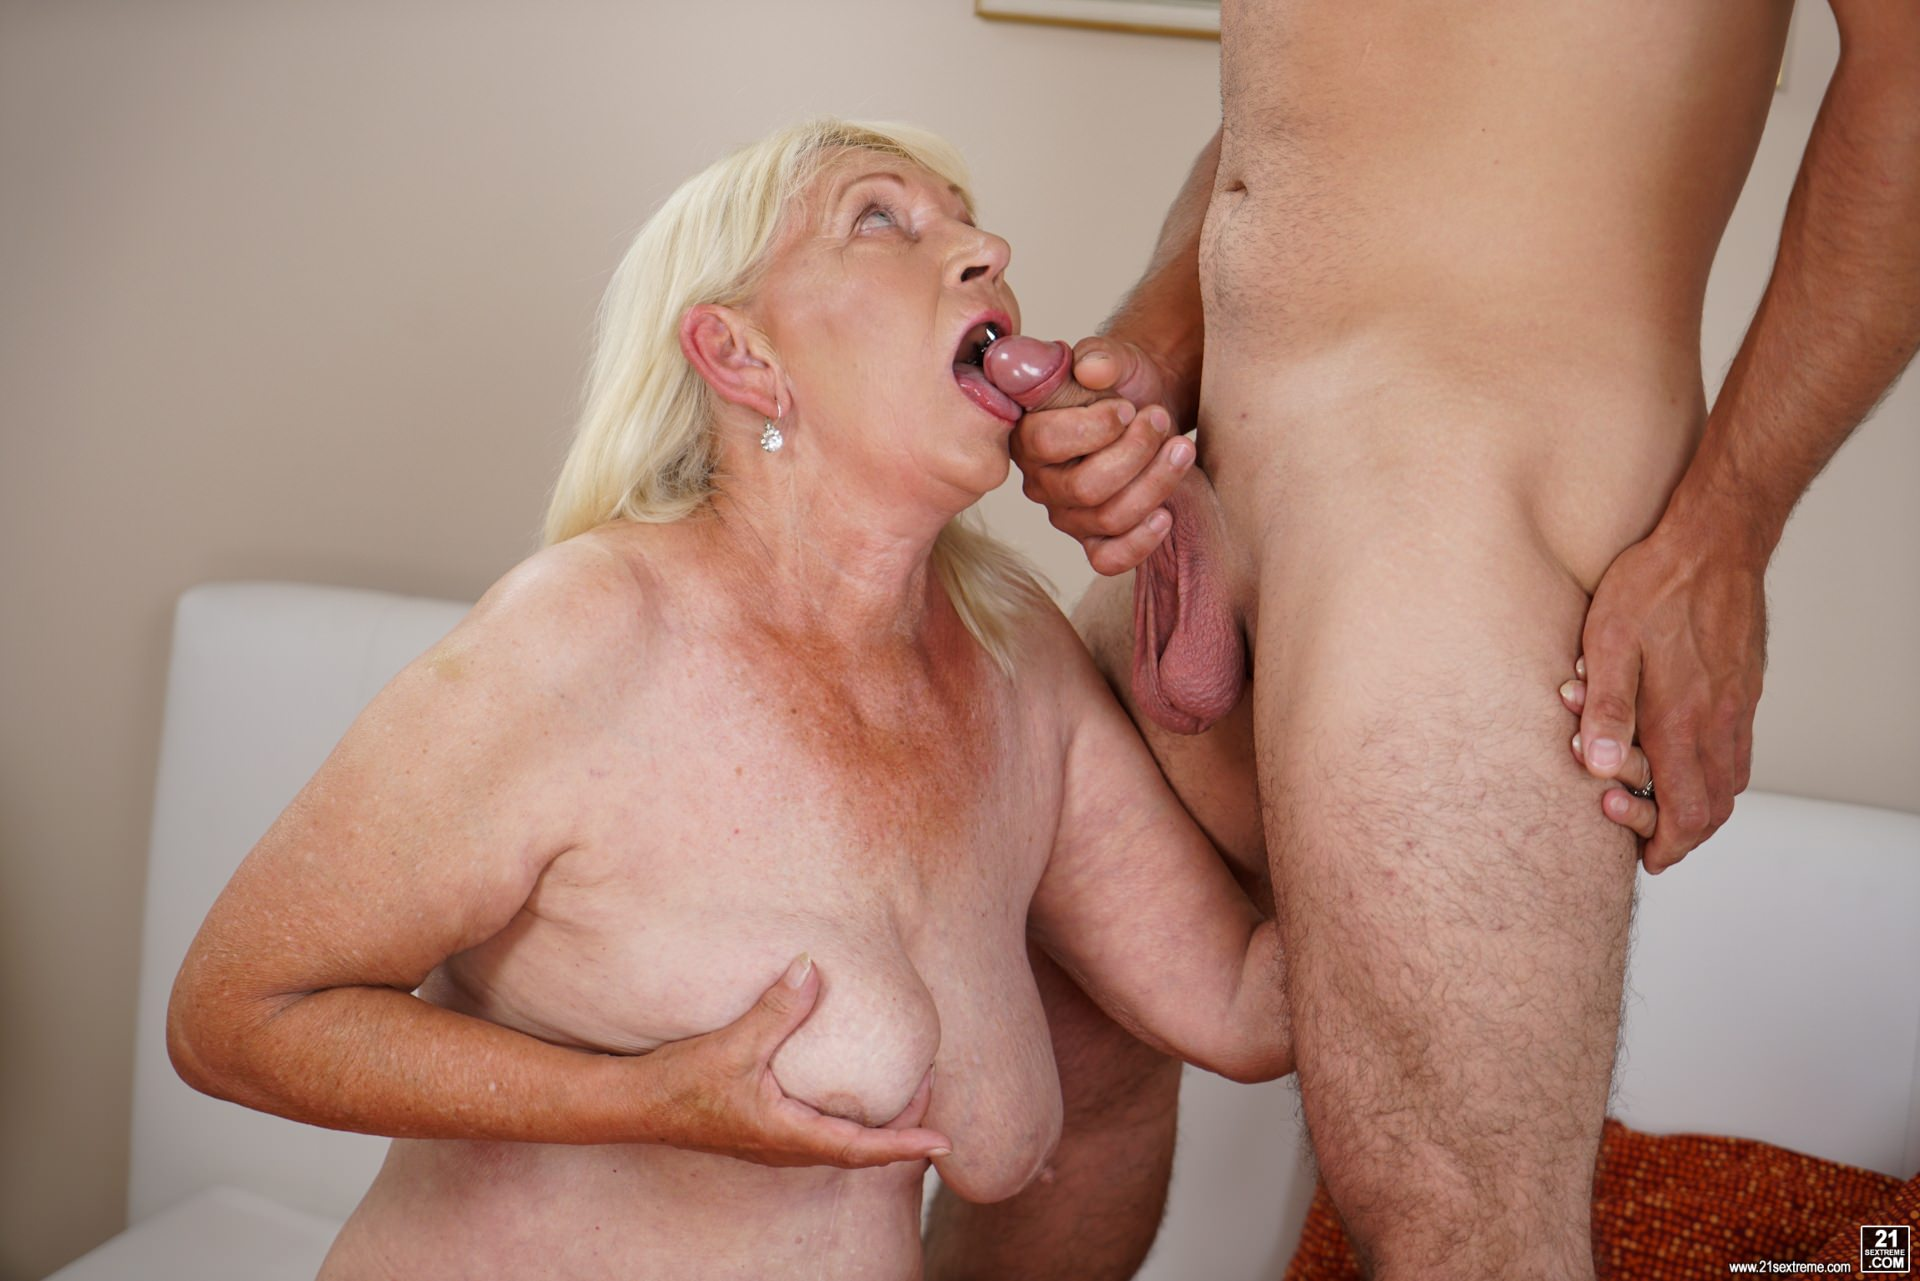 21Sextury 'Naughty Granny's Cravings ' starring Irene (photo 125)